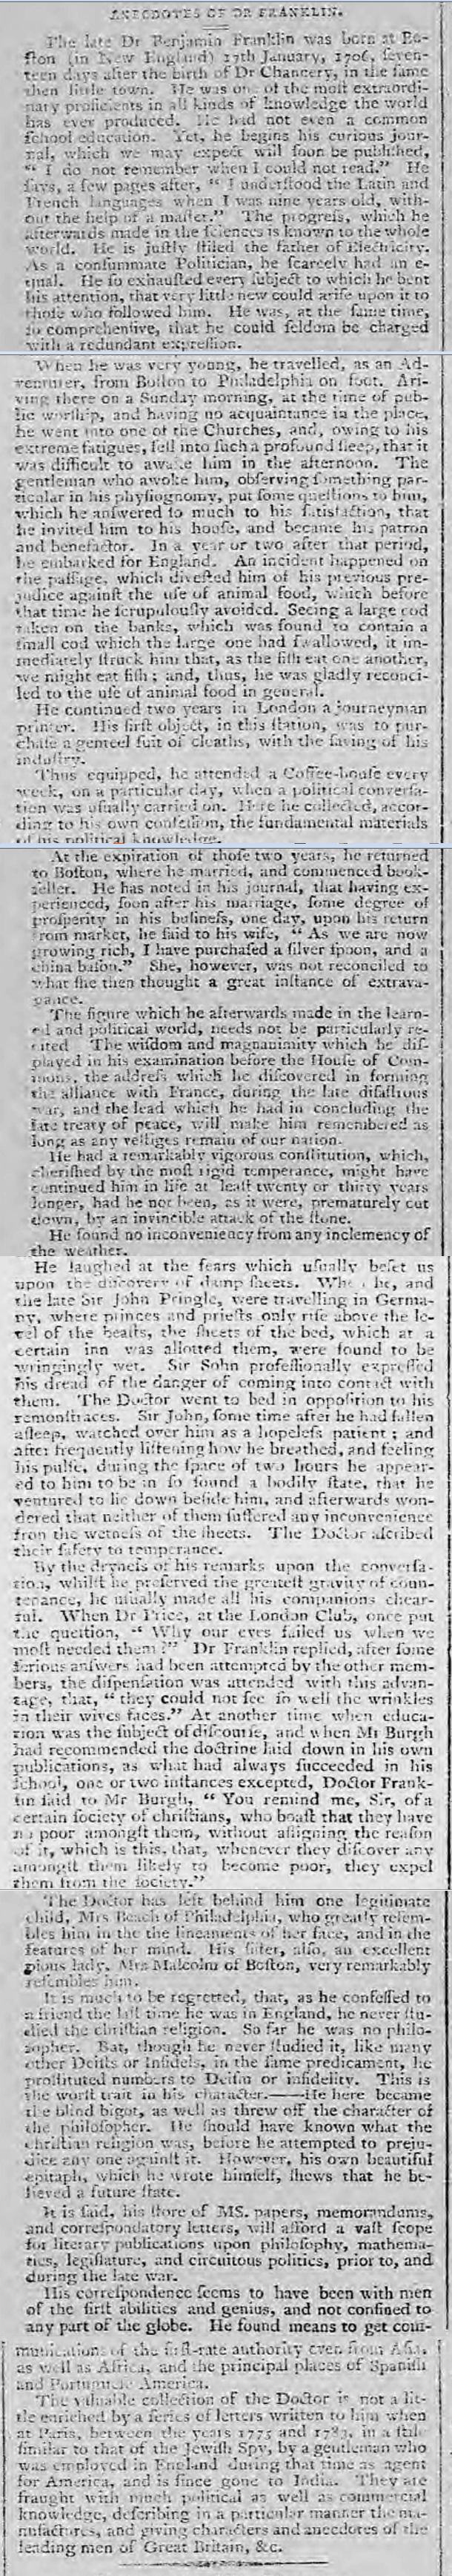 historical newspaper story about The Death of Benjamin Franklin